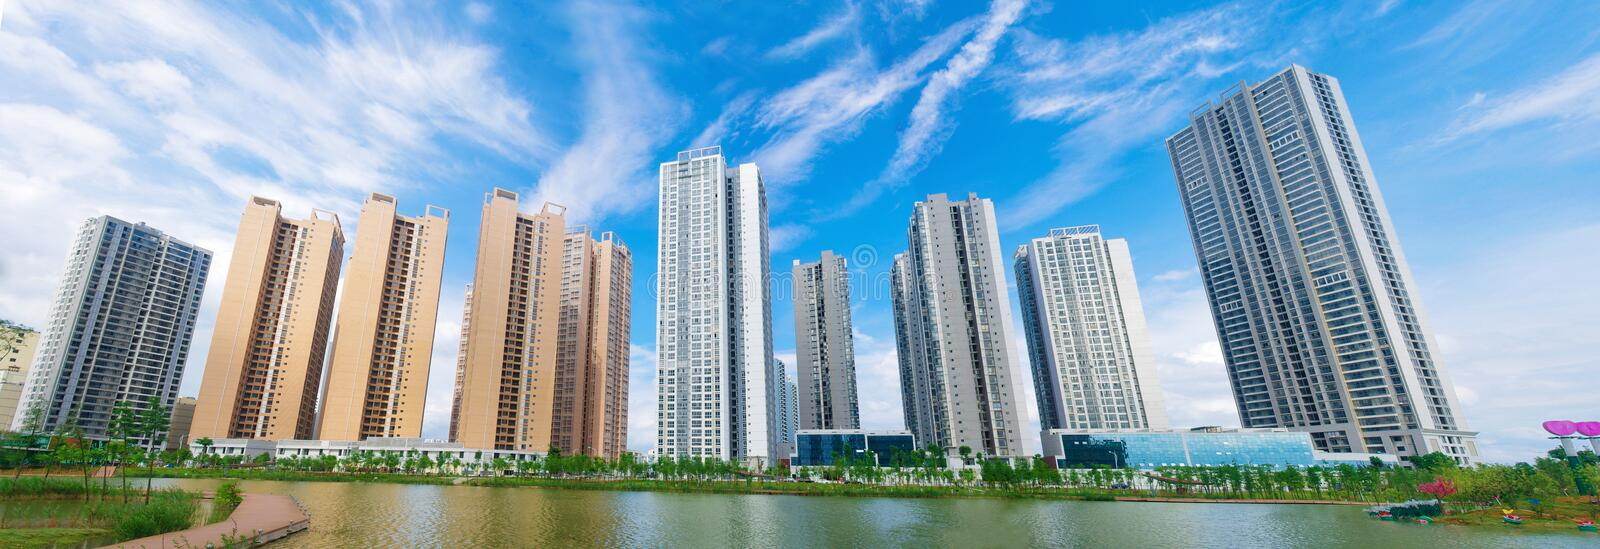 Tall building. New buildings on the lake royalty free stock images